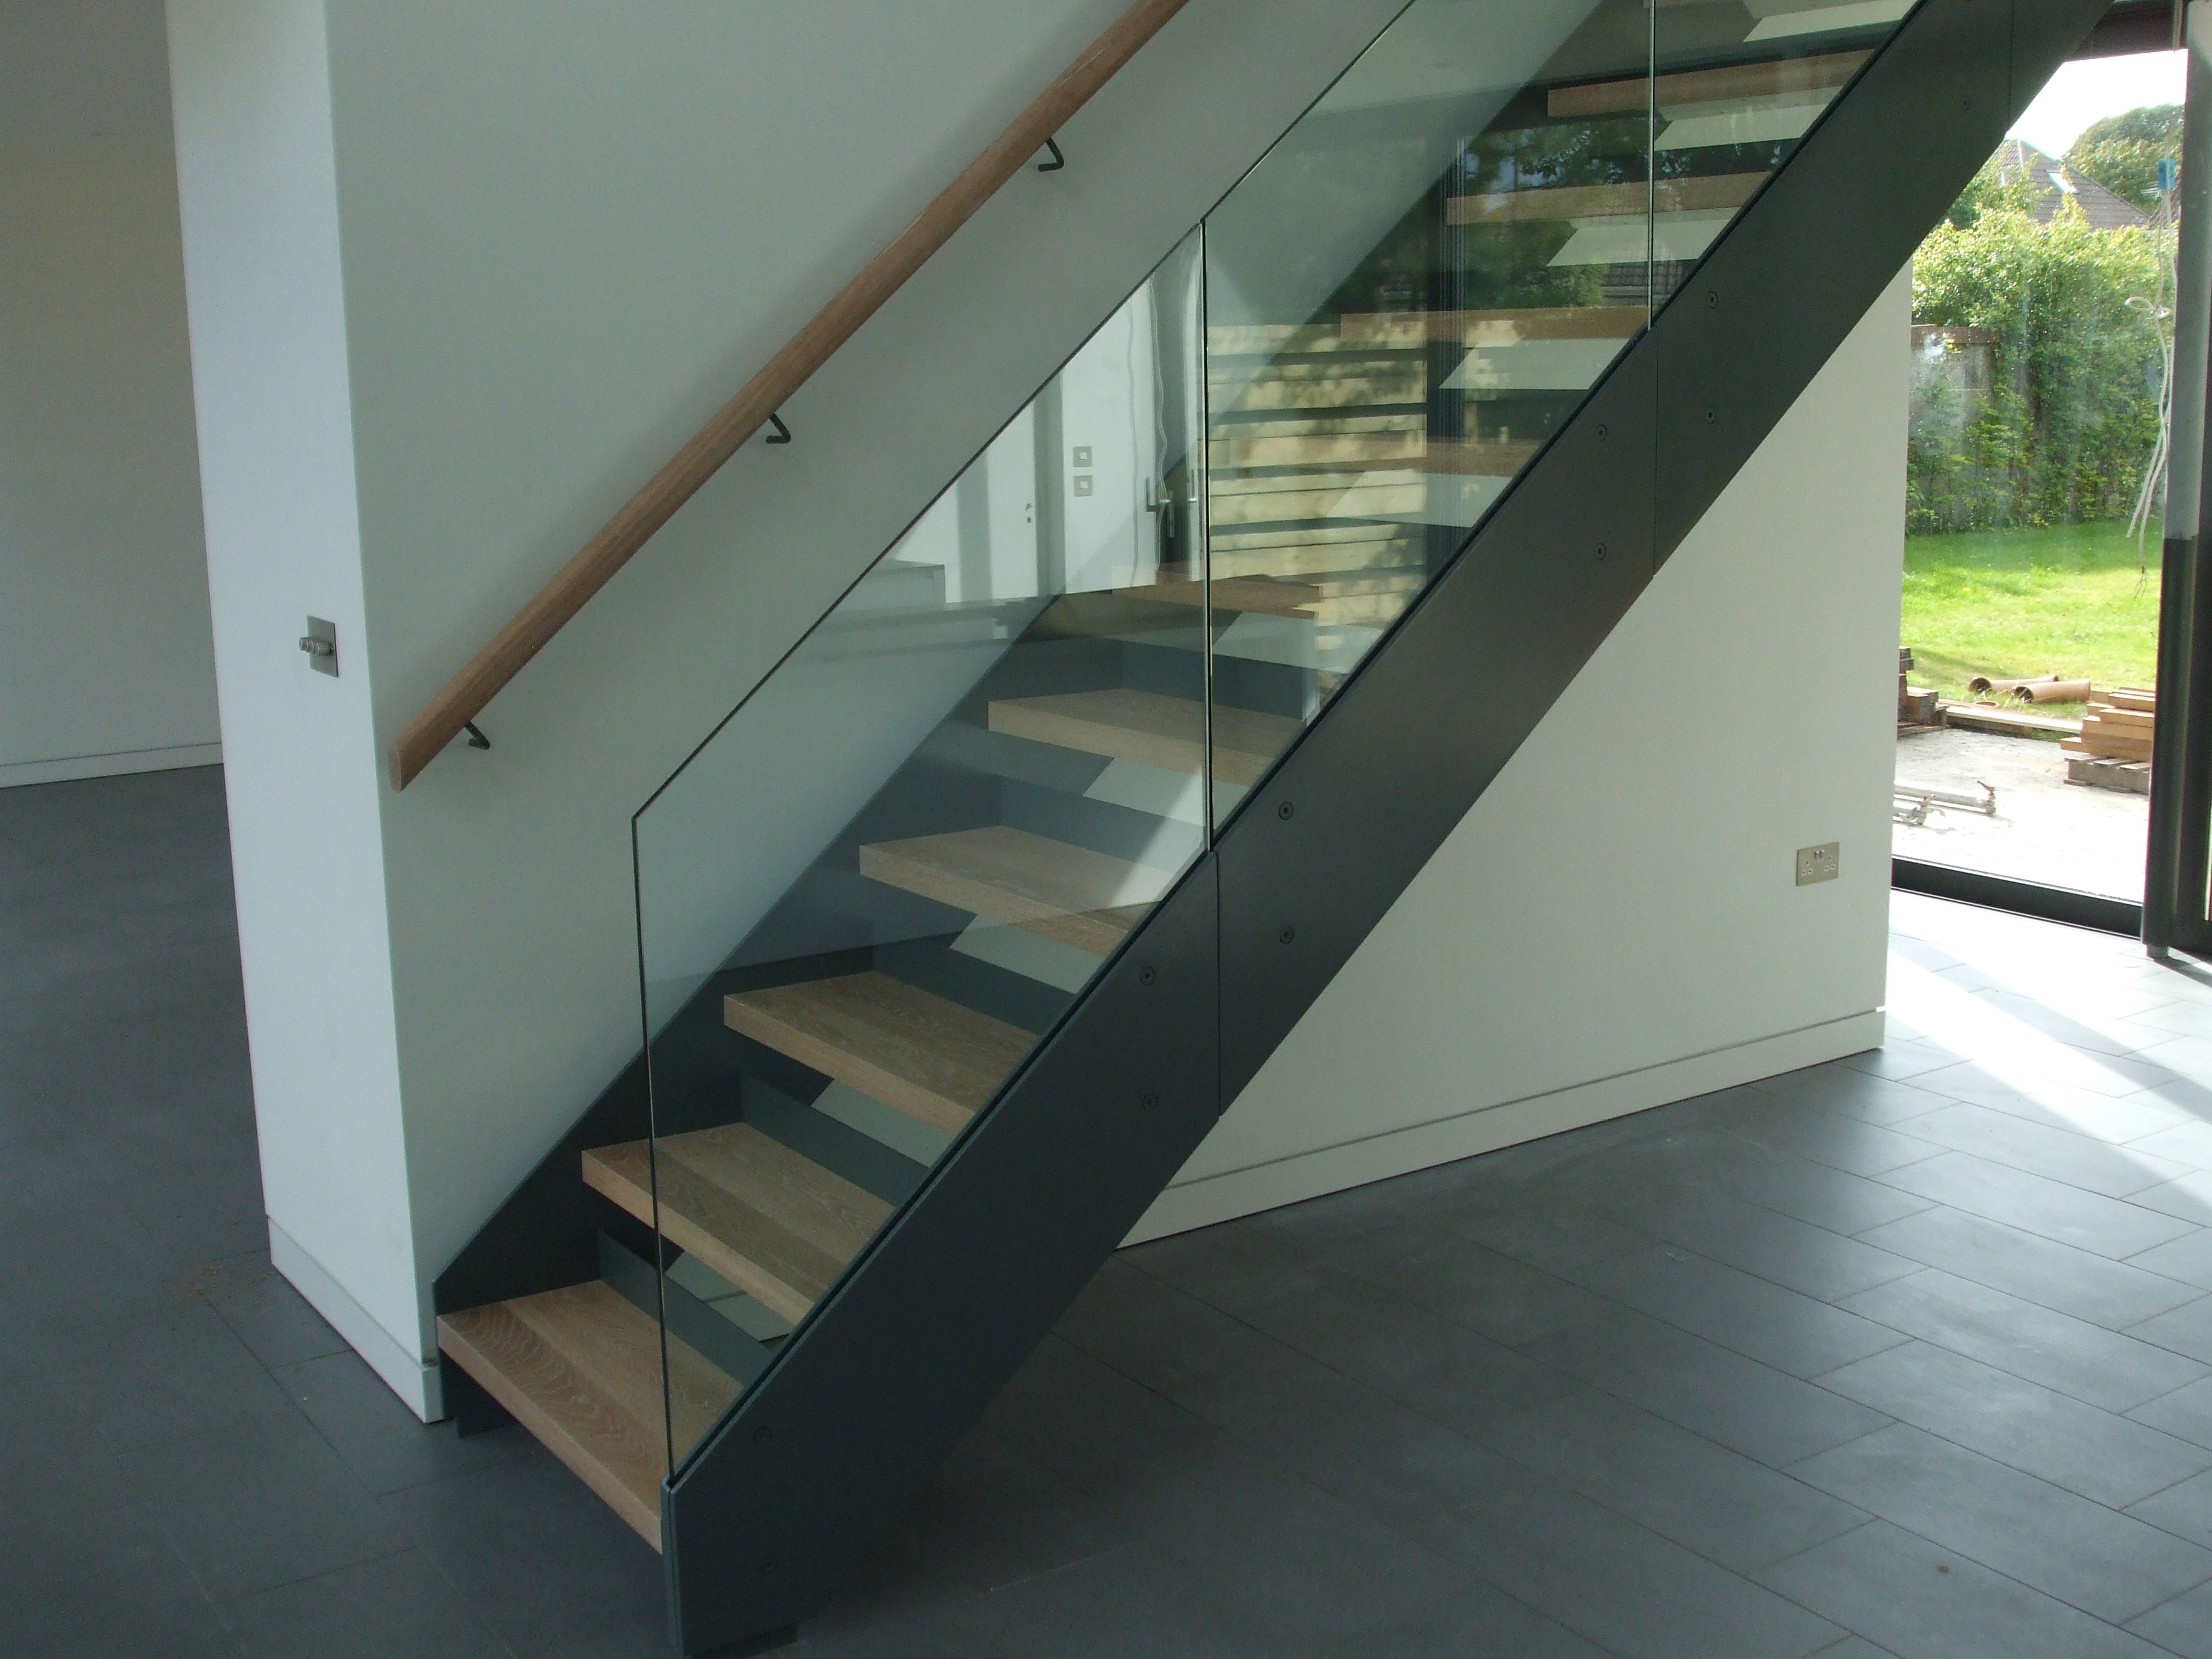 Staircase And Stairs And Stair Parts Athena Fabrication | Stairs With Glass Sides